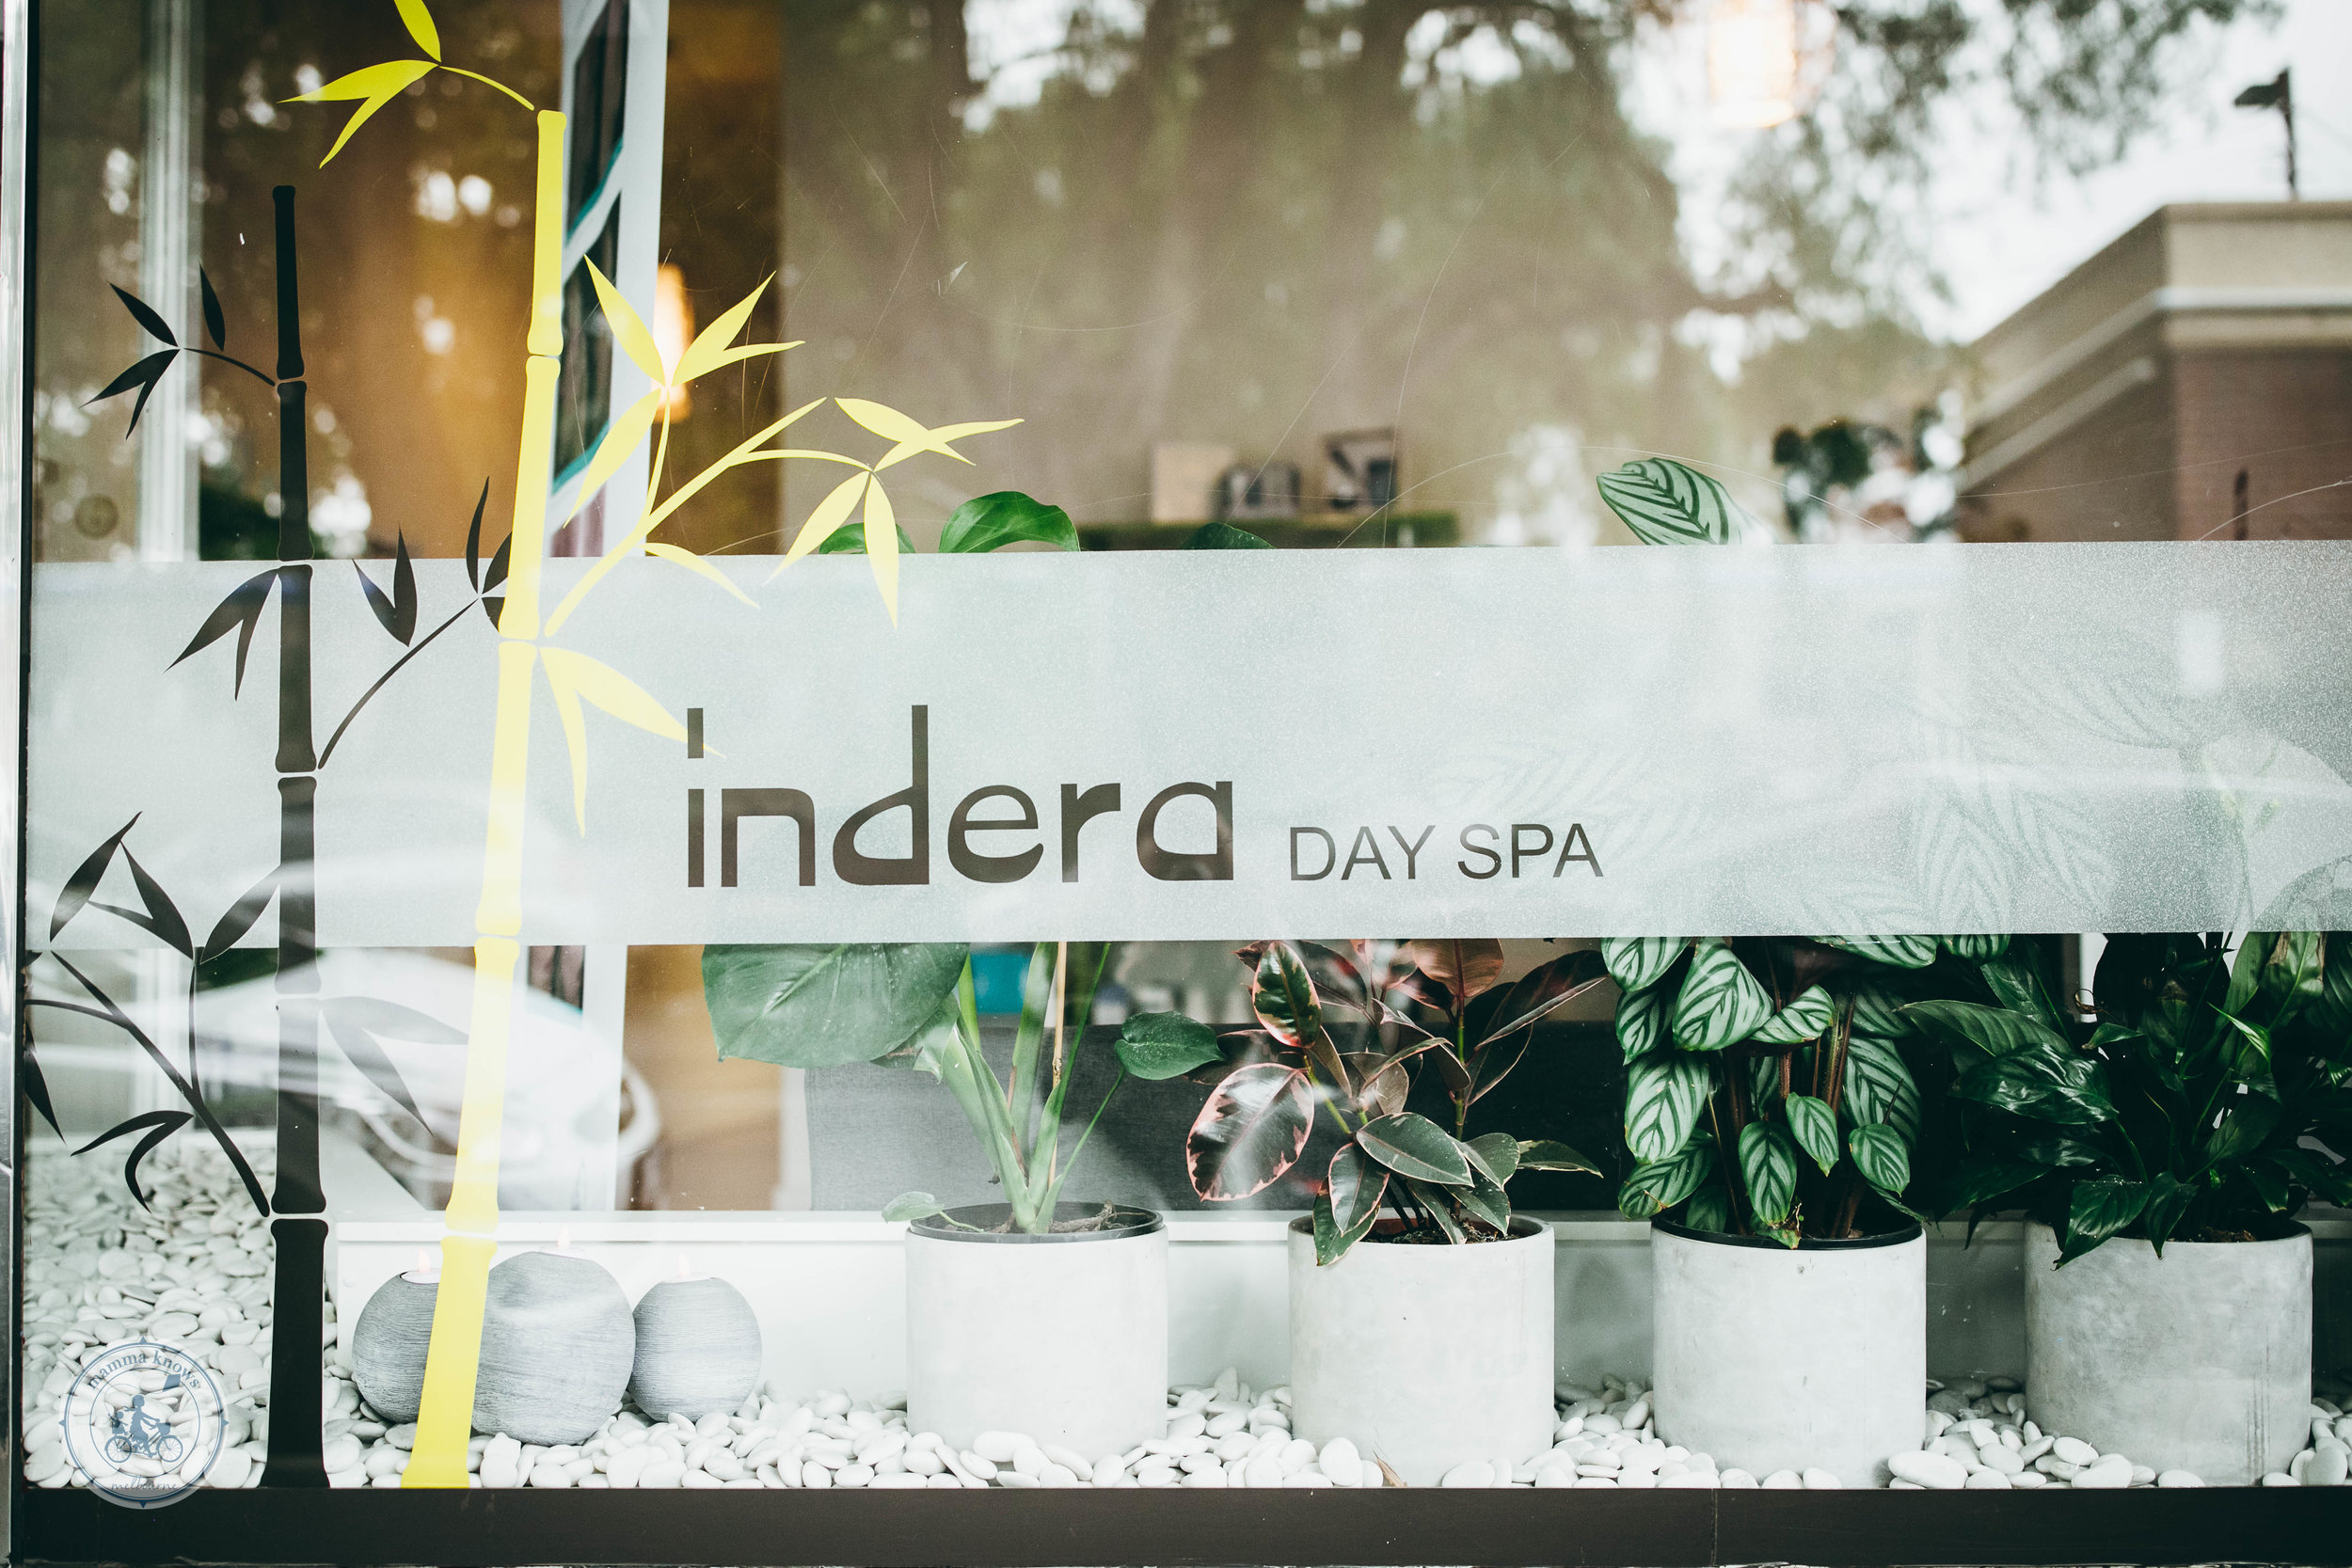 Indera Day Spa 2019 Mamma Knows West (5 of 5).jpg